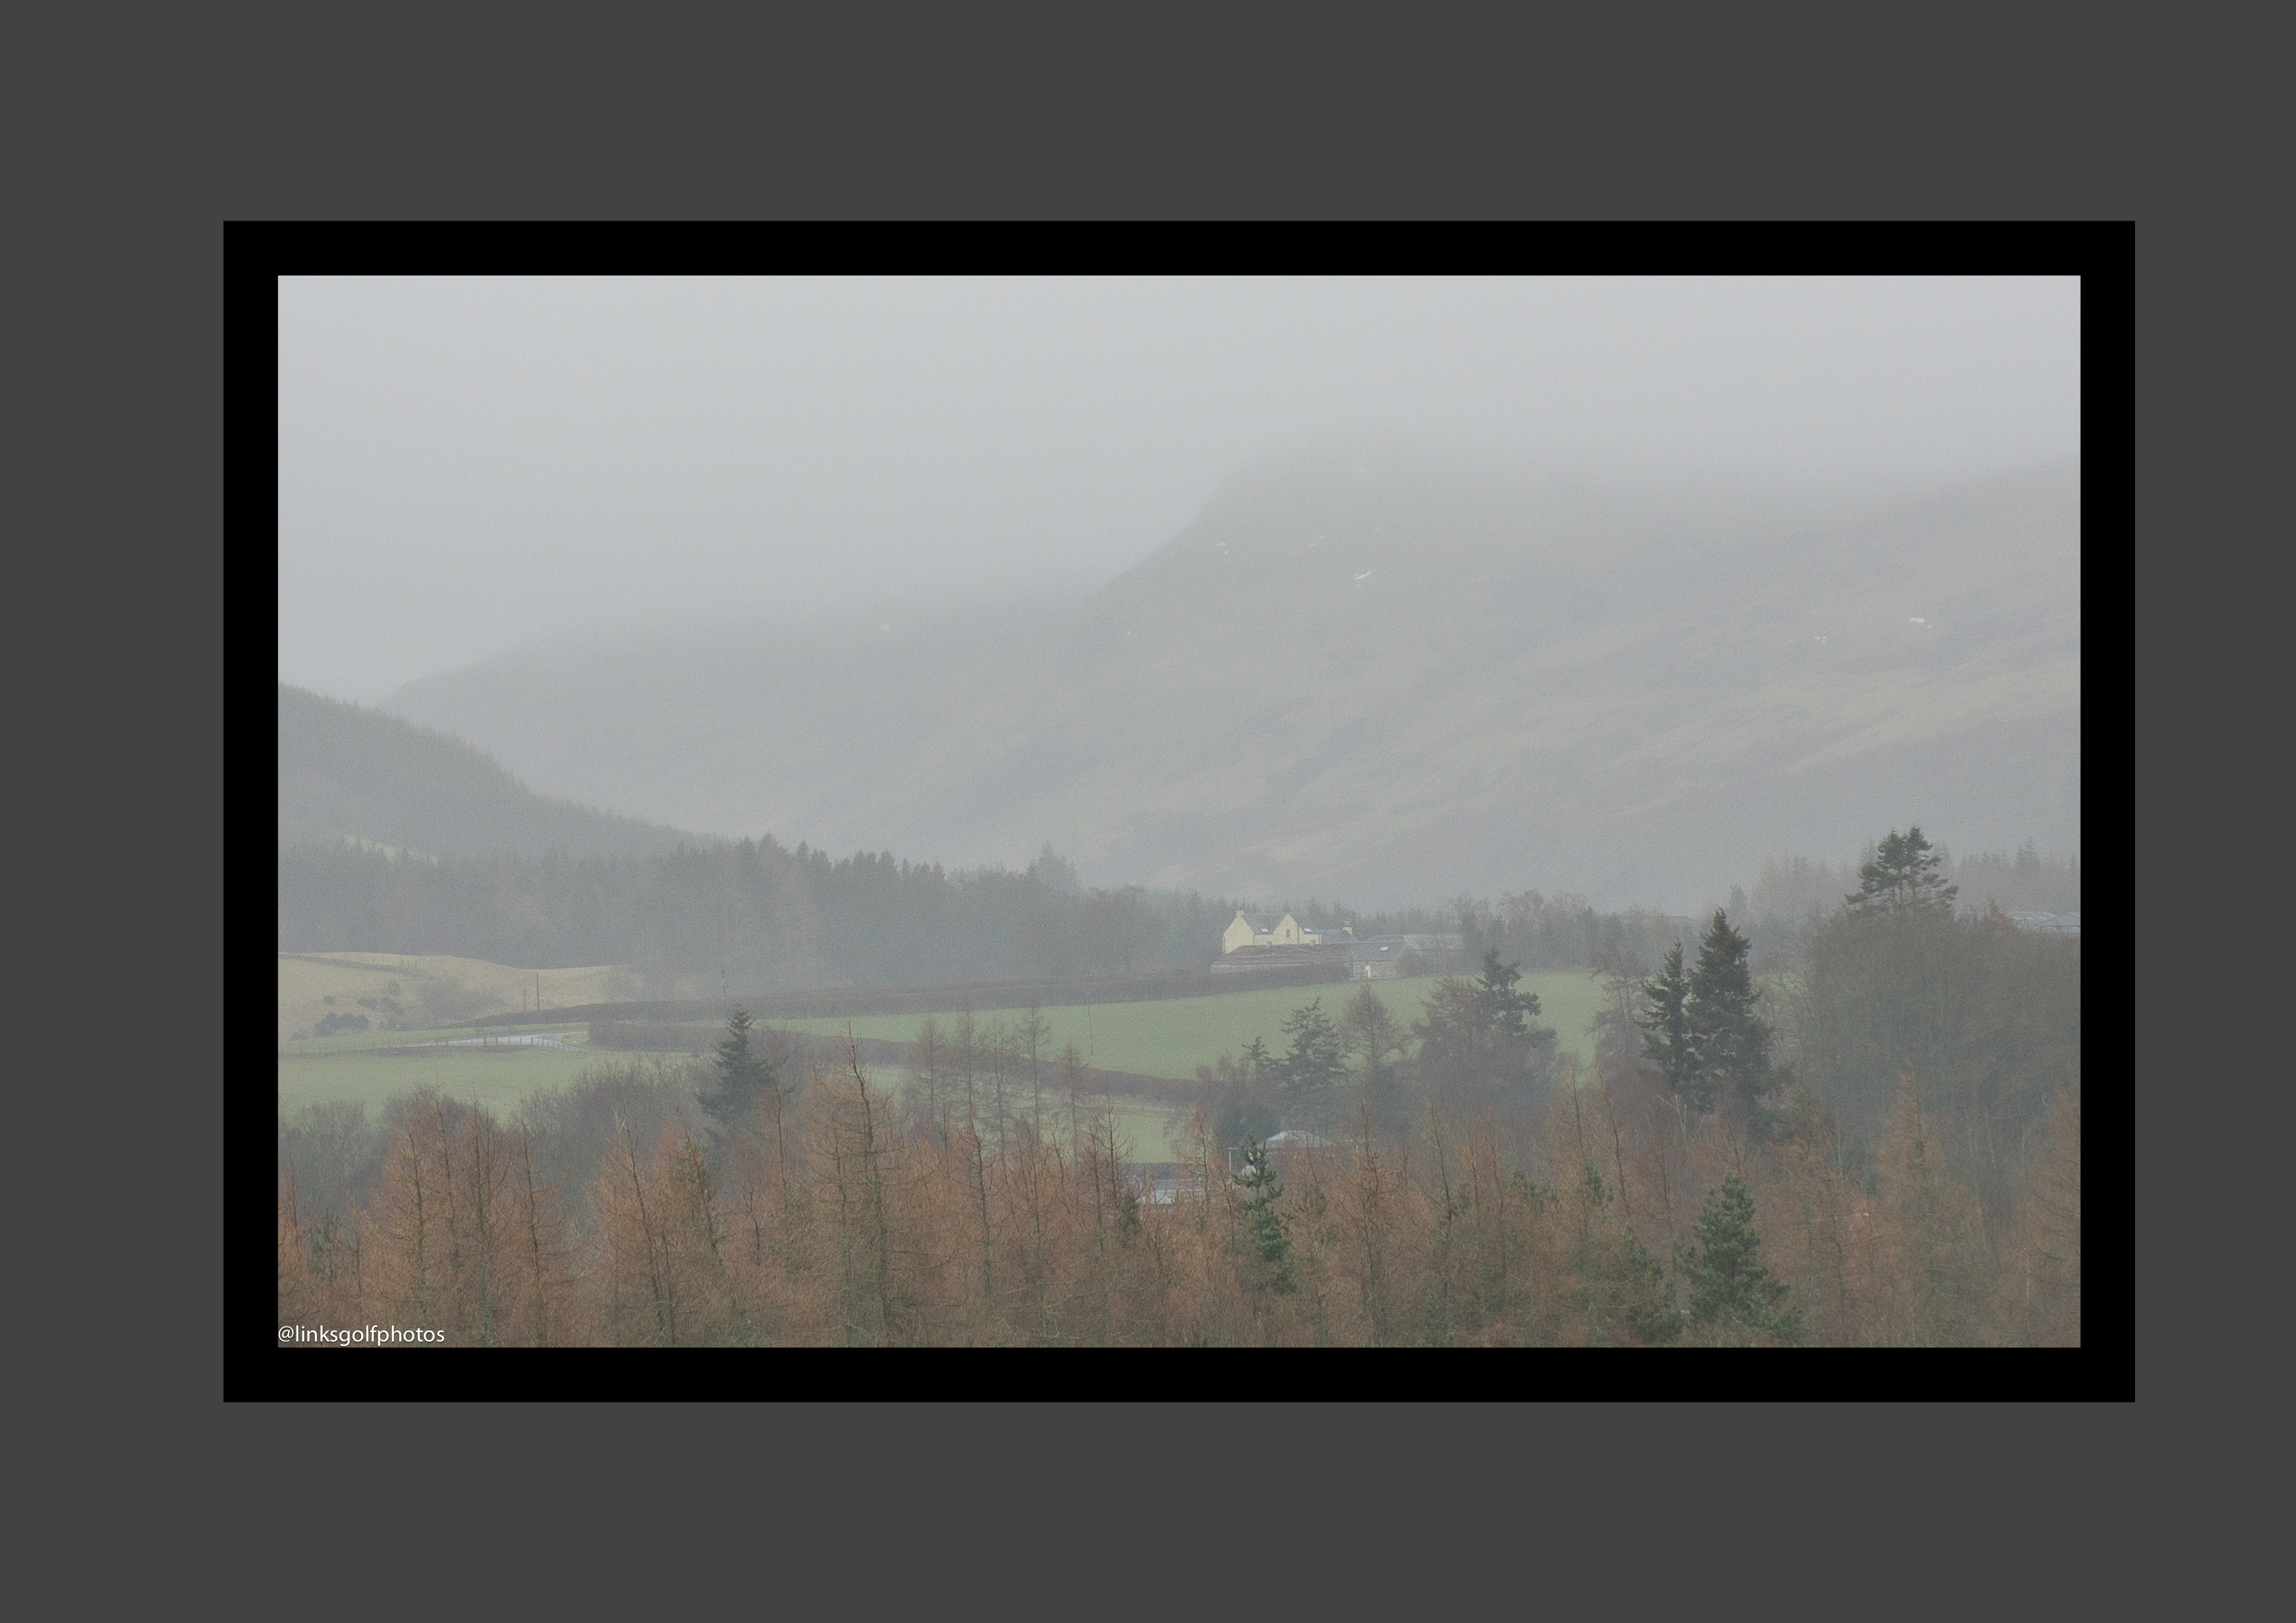 Mist in perthshire